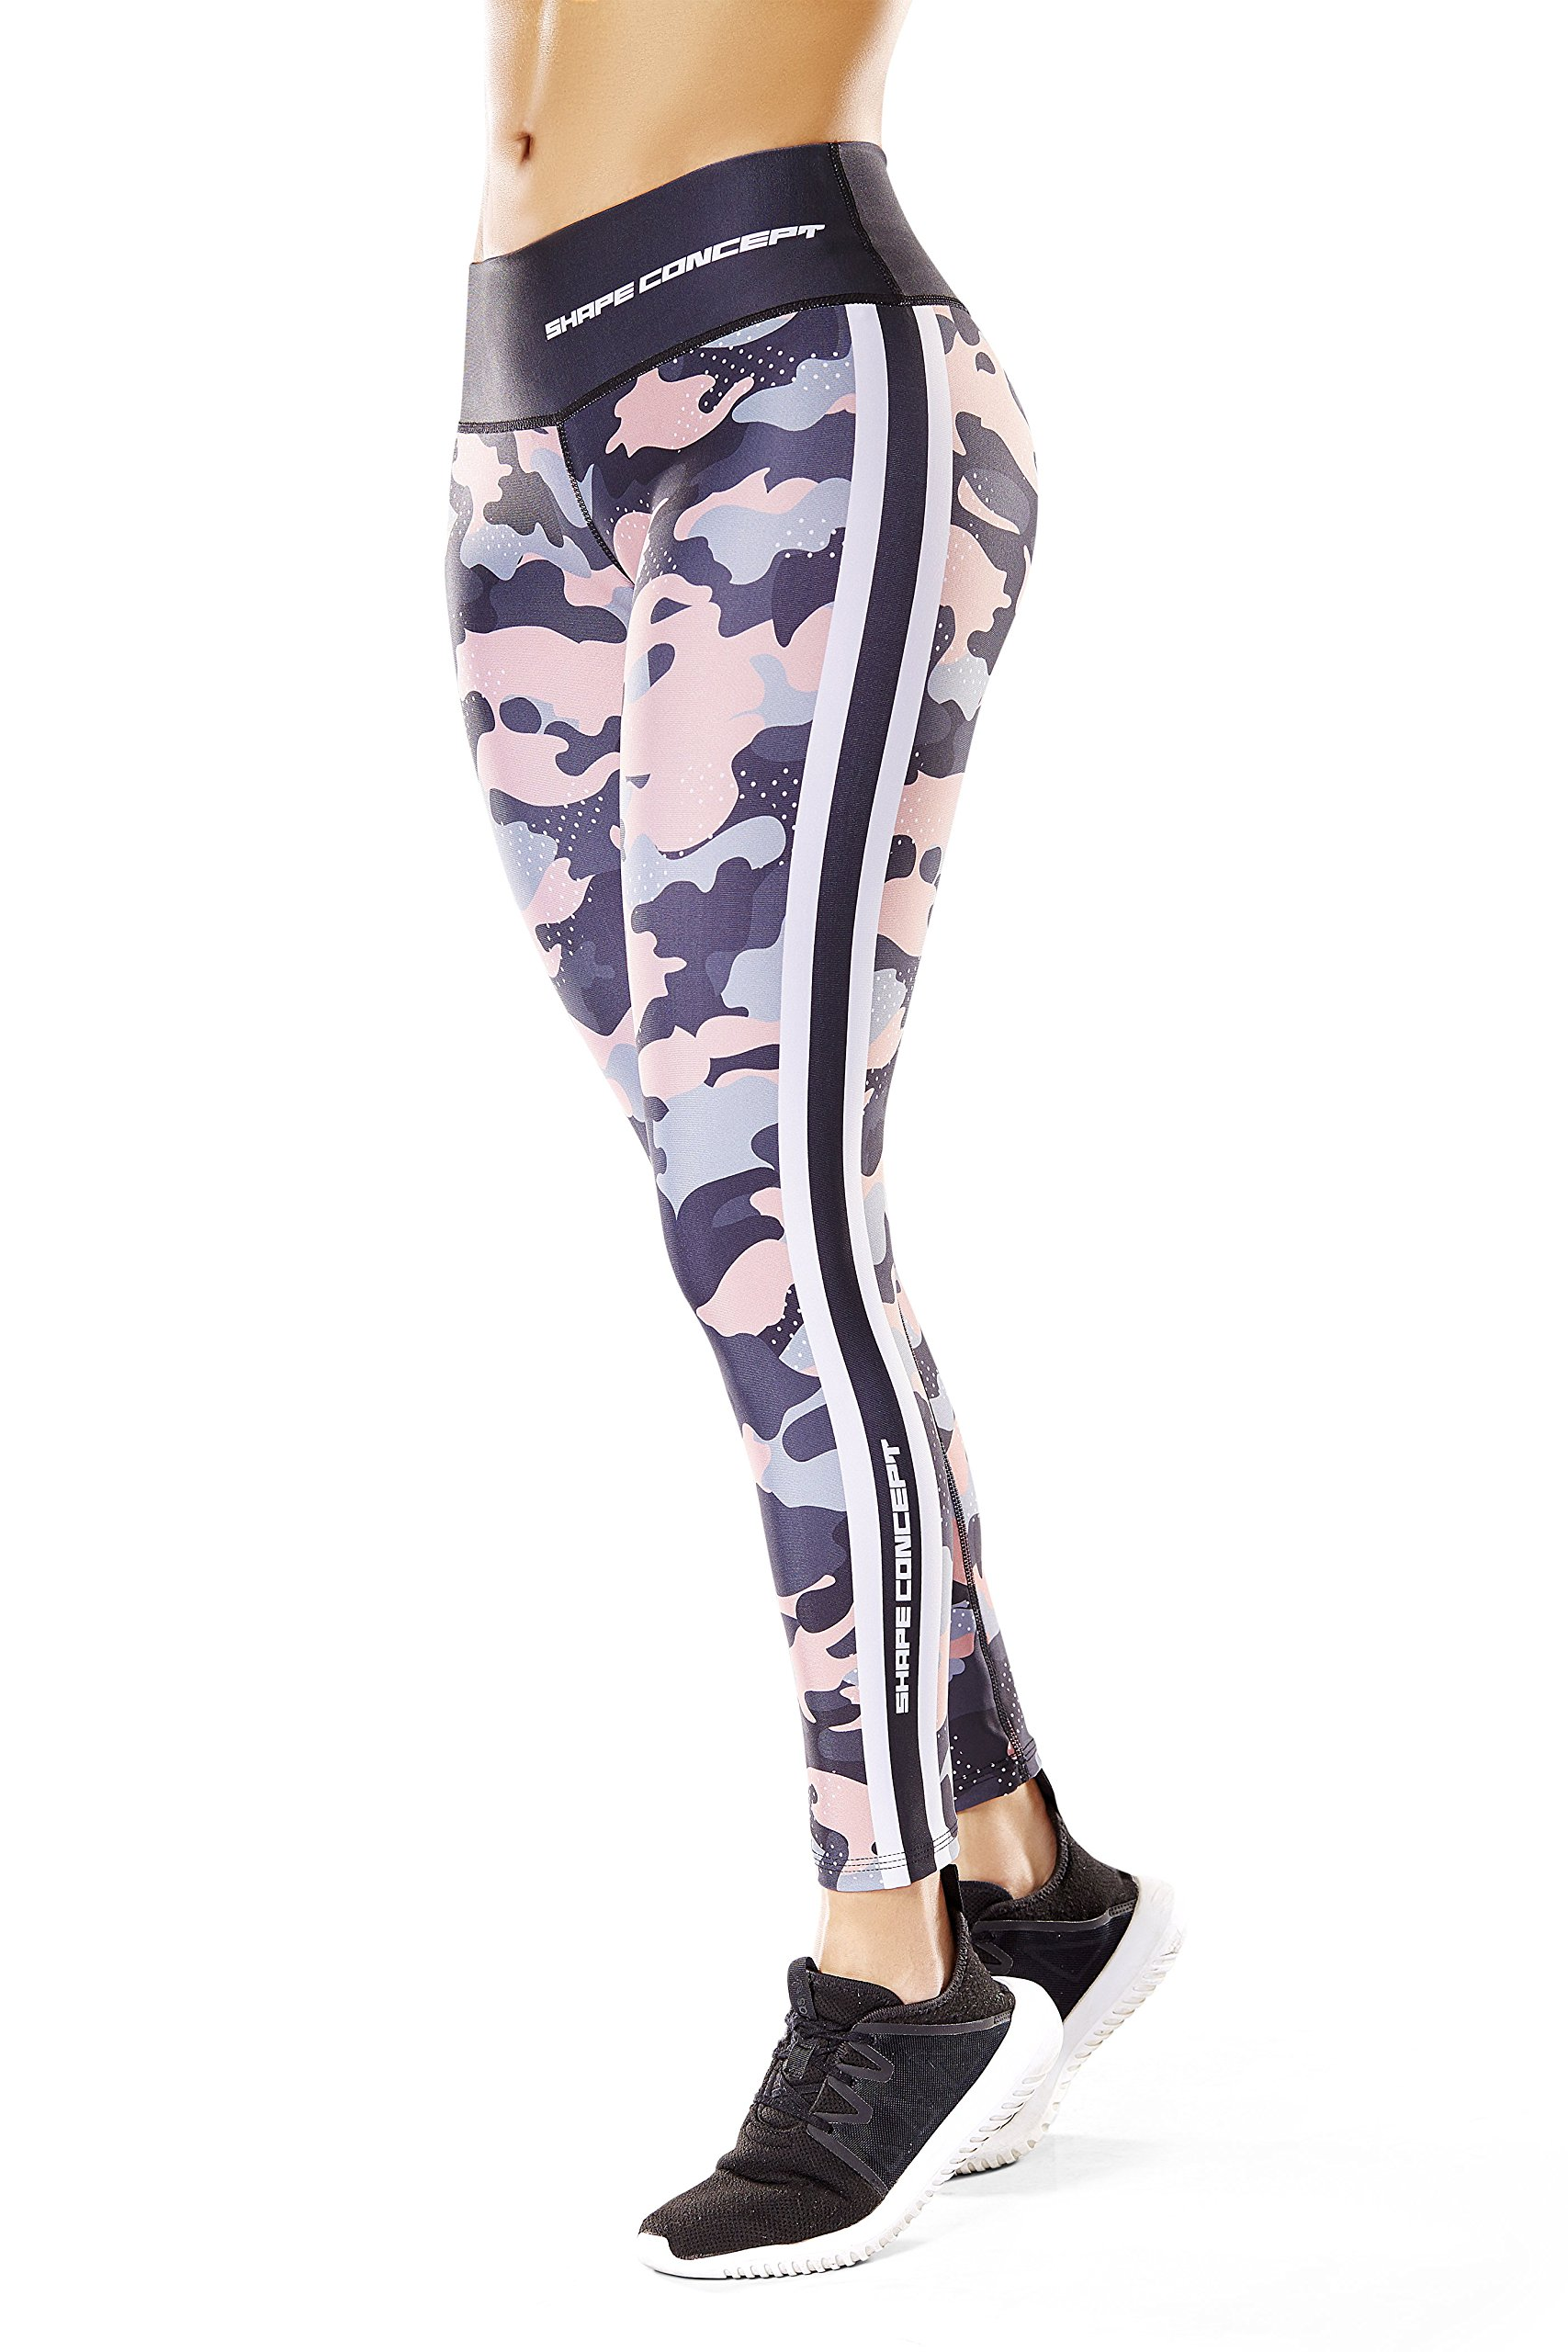 Shape Concept Colombian Workout high Waisted Leggings for Women | Compression Tight Crossfit Yoga Pants Many Styles (SCL008)